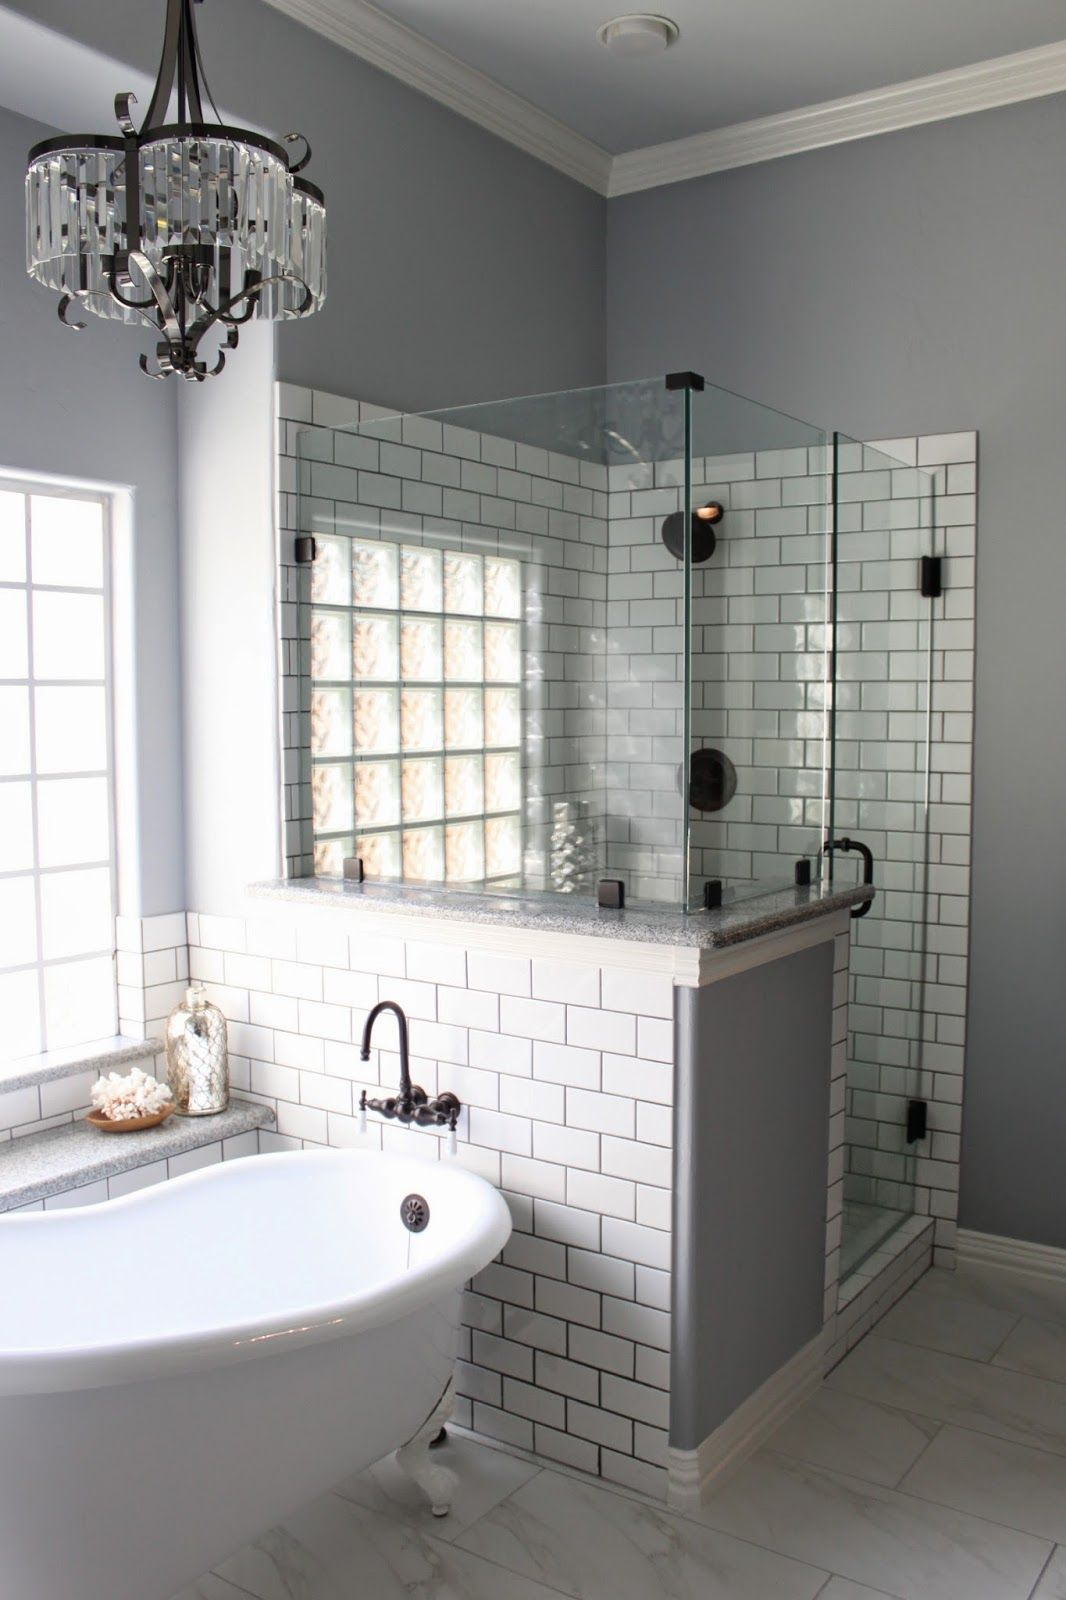 Favorite paint colors master bathroom tubbathroom with gray tileremoving also white subway tile grout design pinterest grey